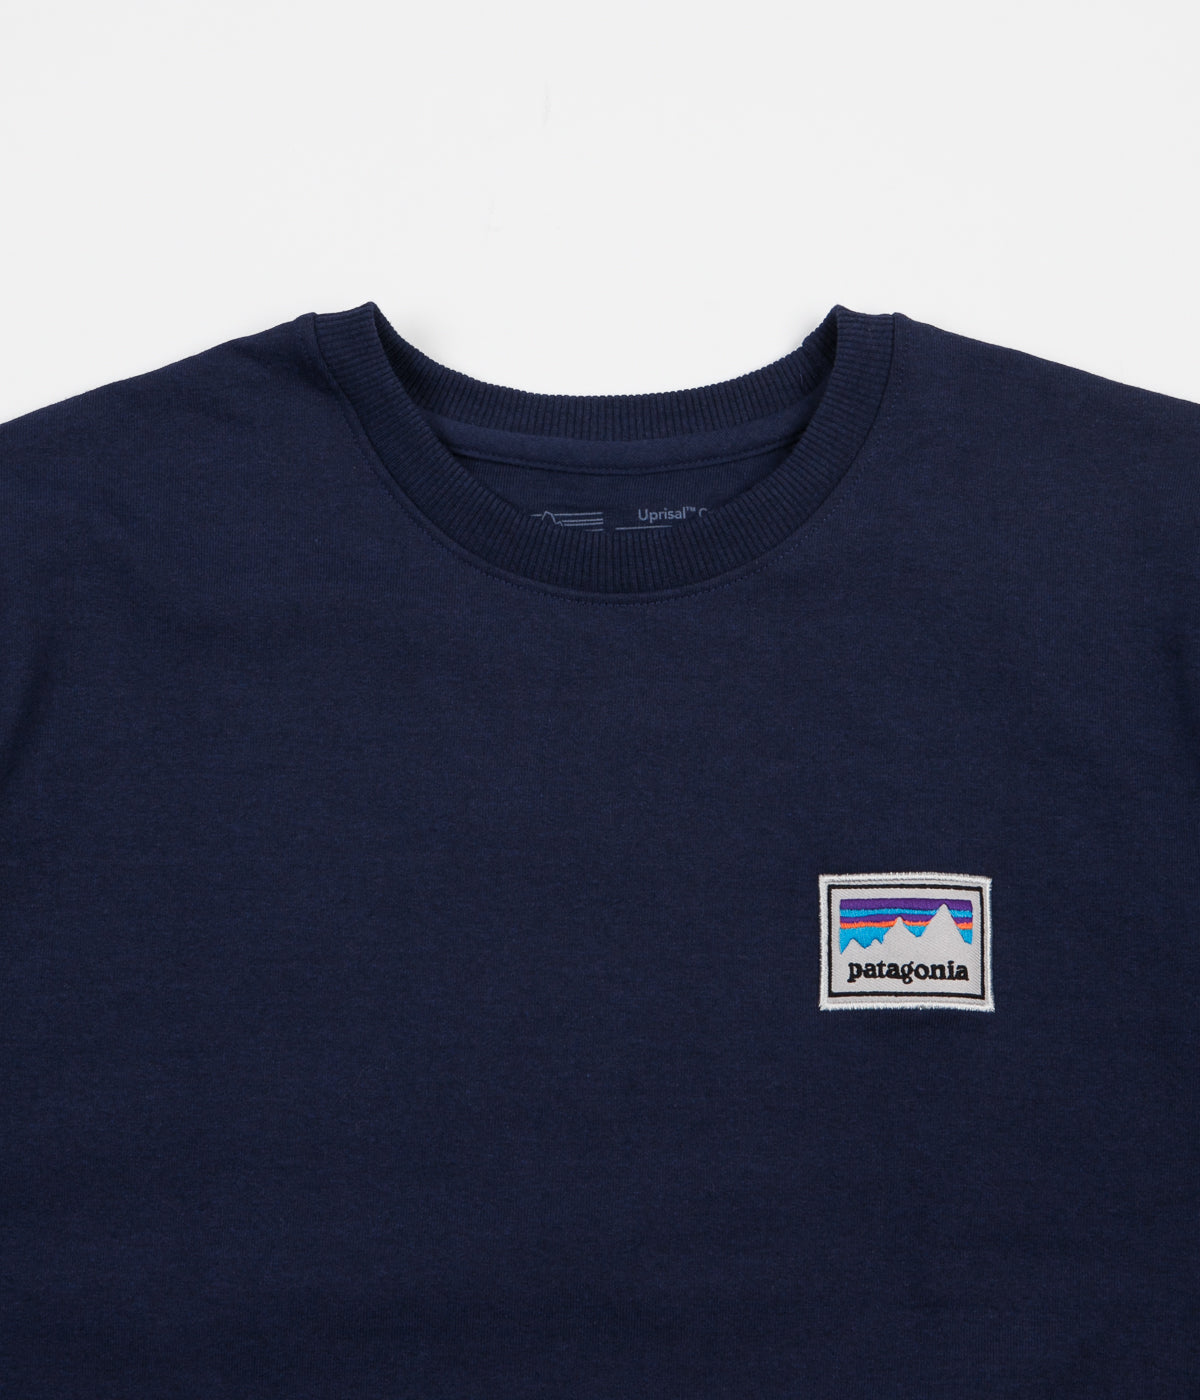 Patagonia Shop Sticker Patch Uprisal Crewneck Sweatshirt - Classic Navy